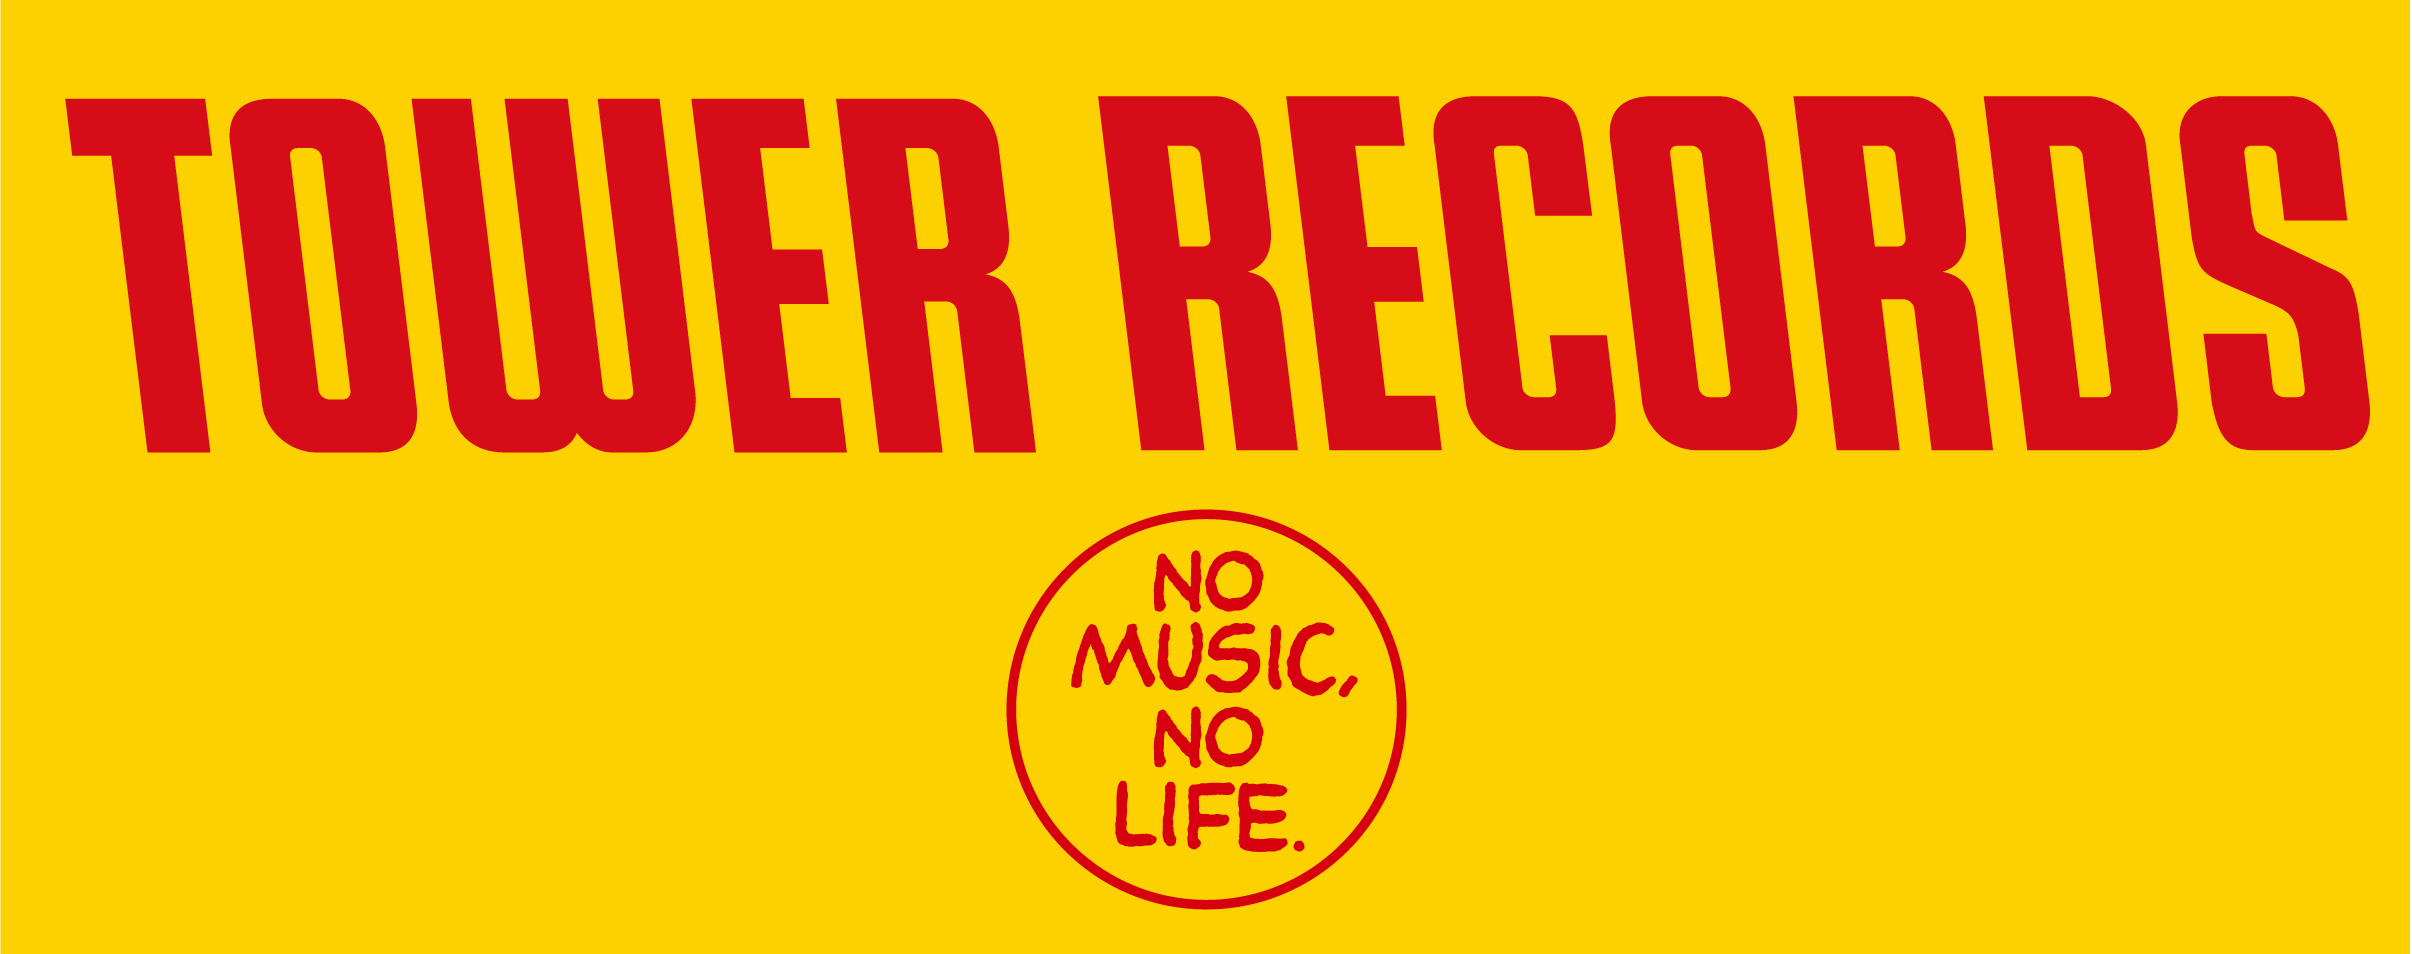 Tower Records unveils their Yearly Bestseller Lists for 2016